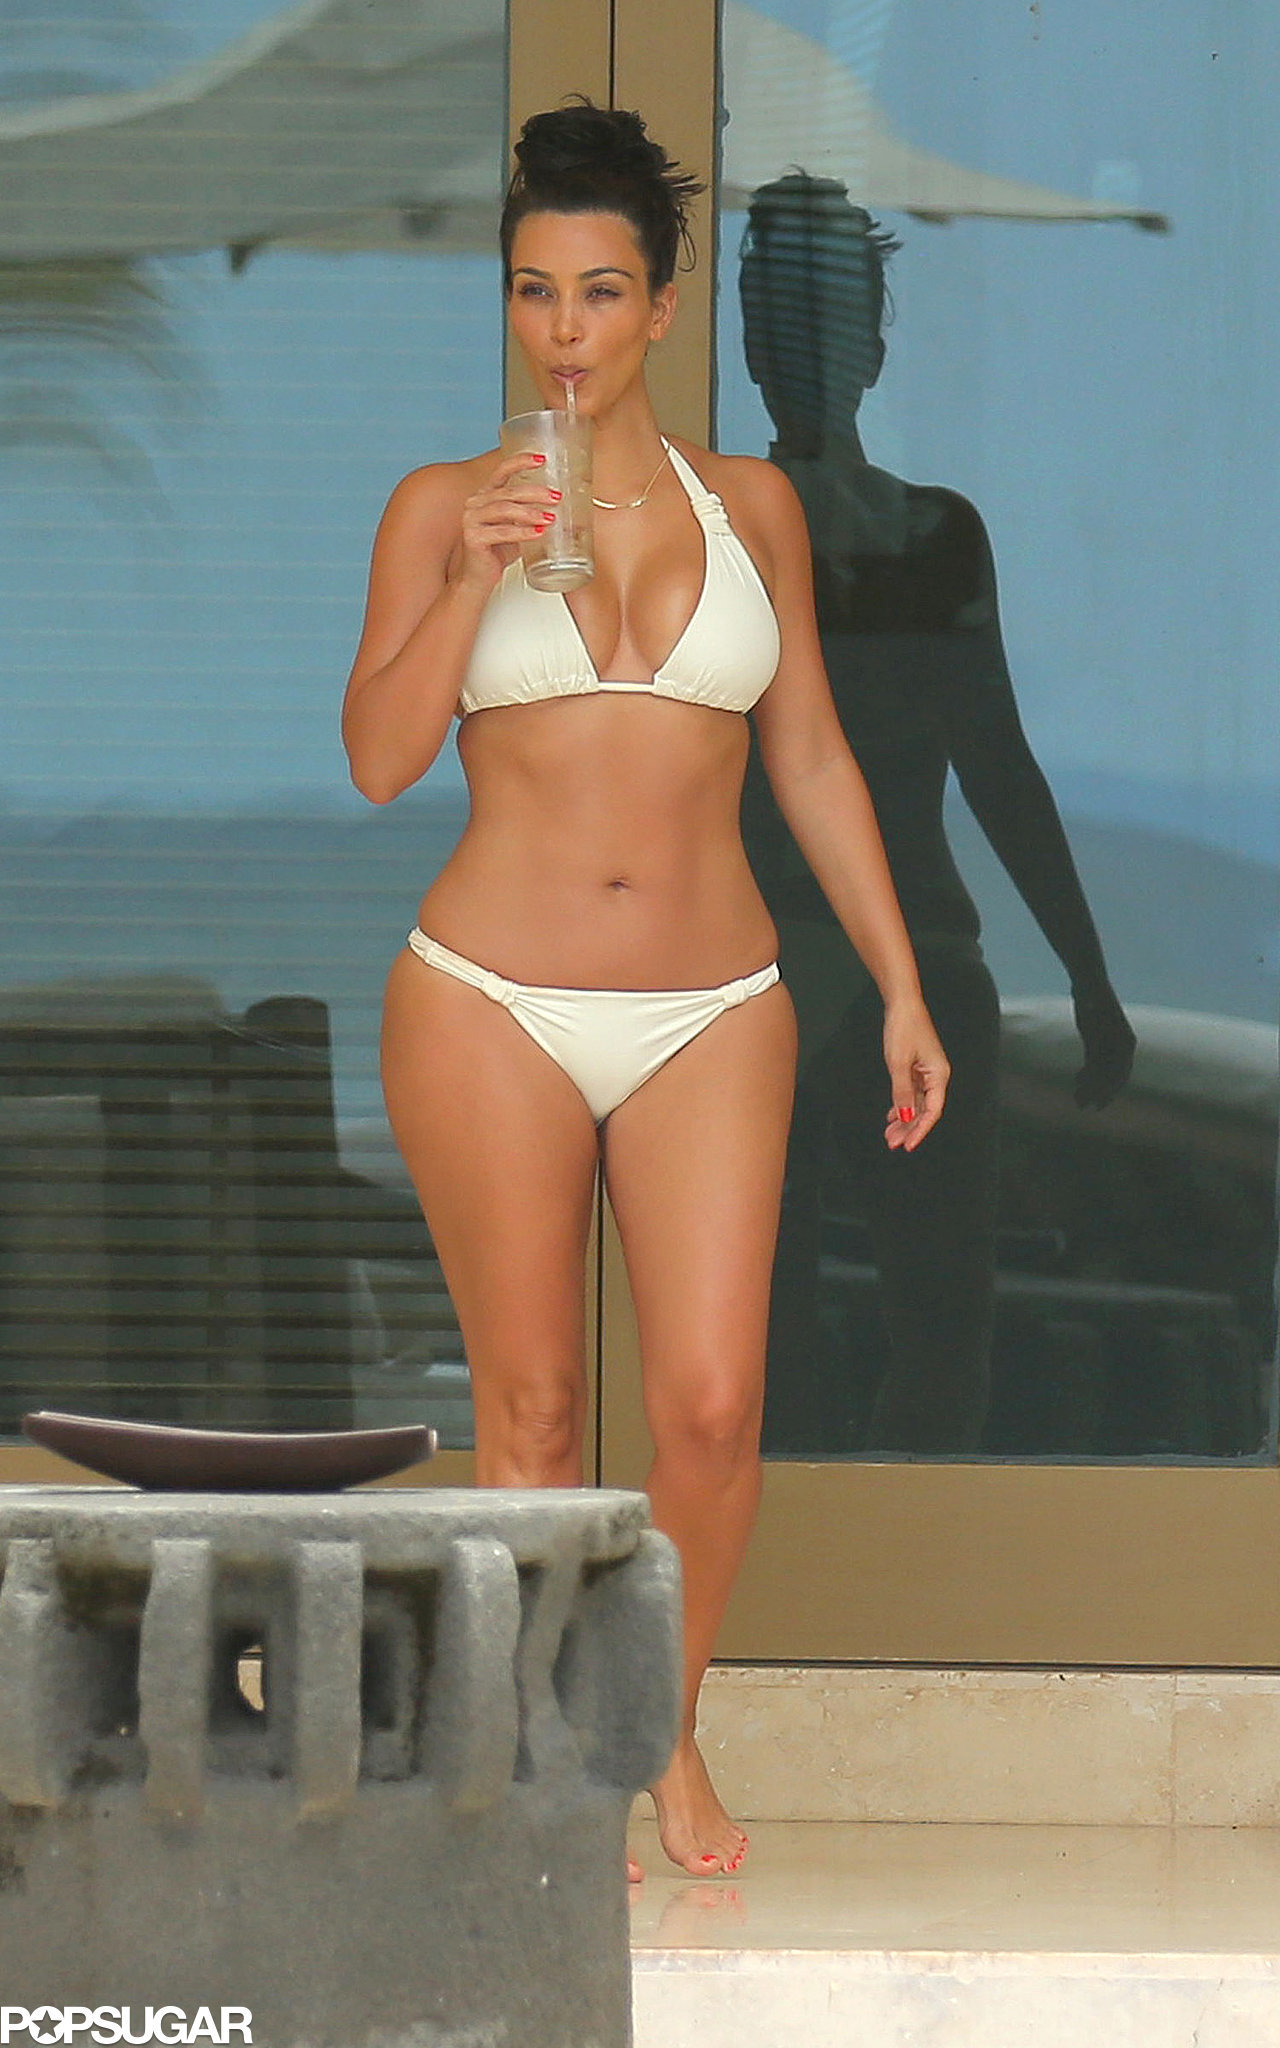 kim kardashian cannot be natty in this pic - bodybuilding forums